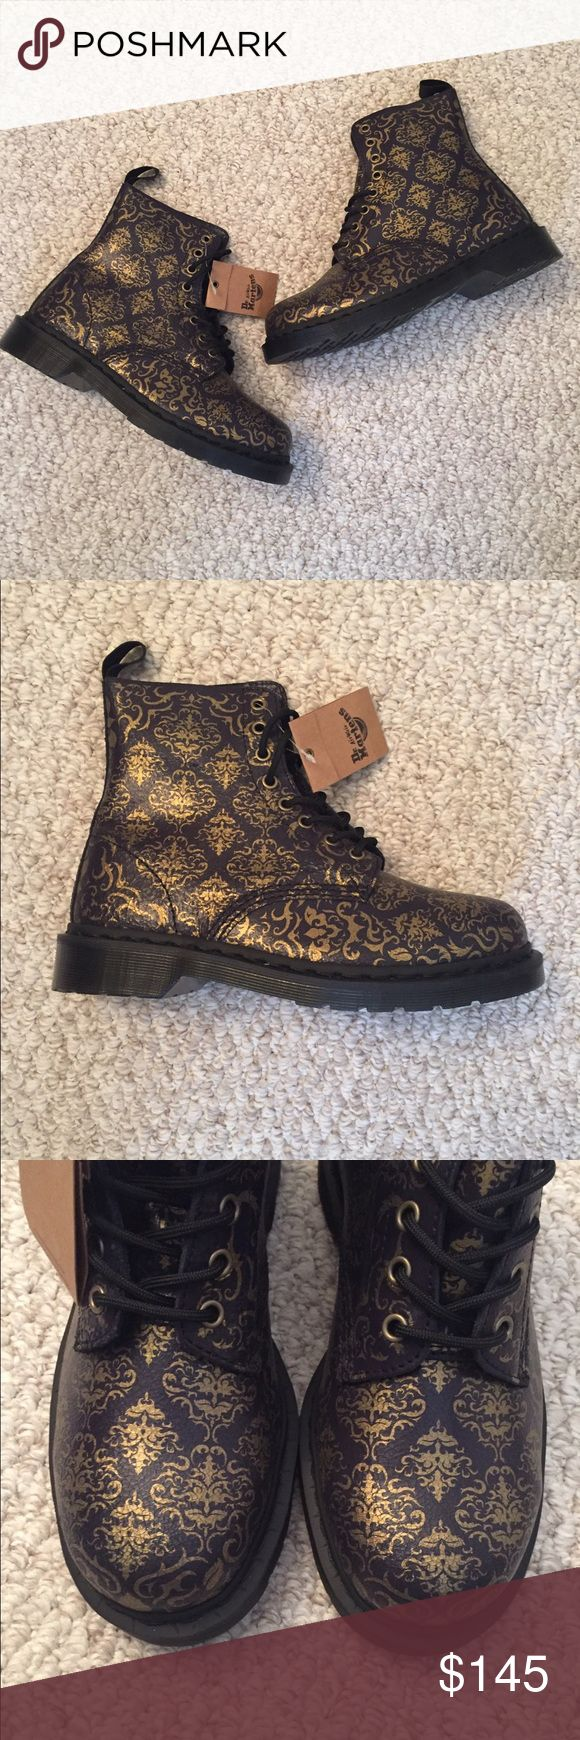 Dr Martens Pascal Baroque Purple Gold *New* Dr Martens baroque crystal suede, purple and gold. Women's size 9 US / 7 UK. New w/tag attached. Smoke free/pet free home. No trades. Thanks! Dr. Martens Shoes Combat & Moto Boots